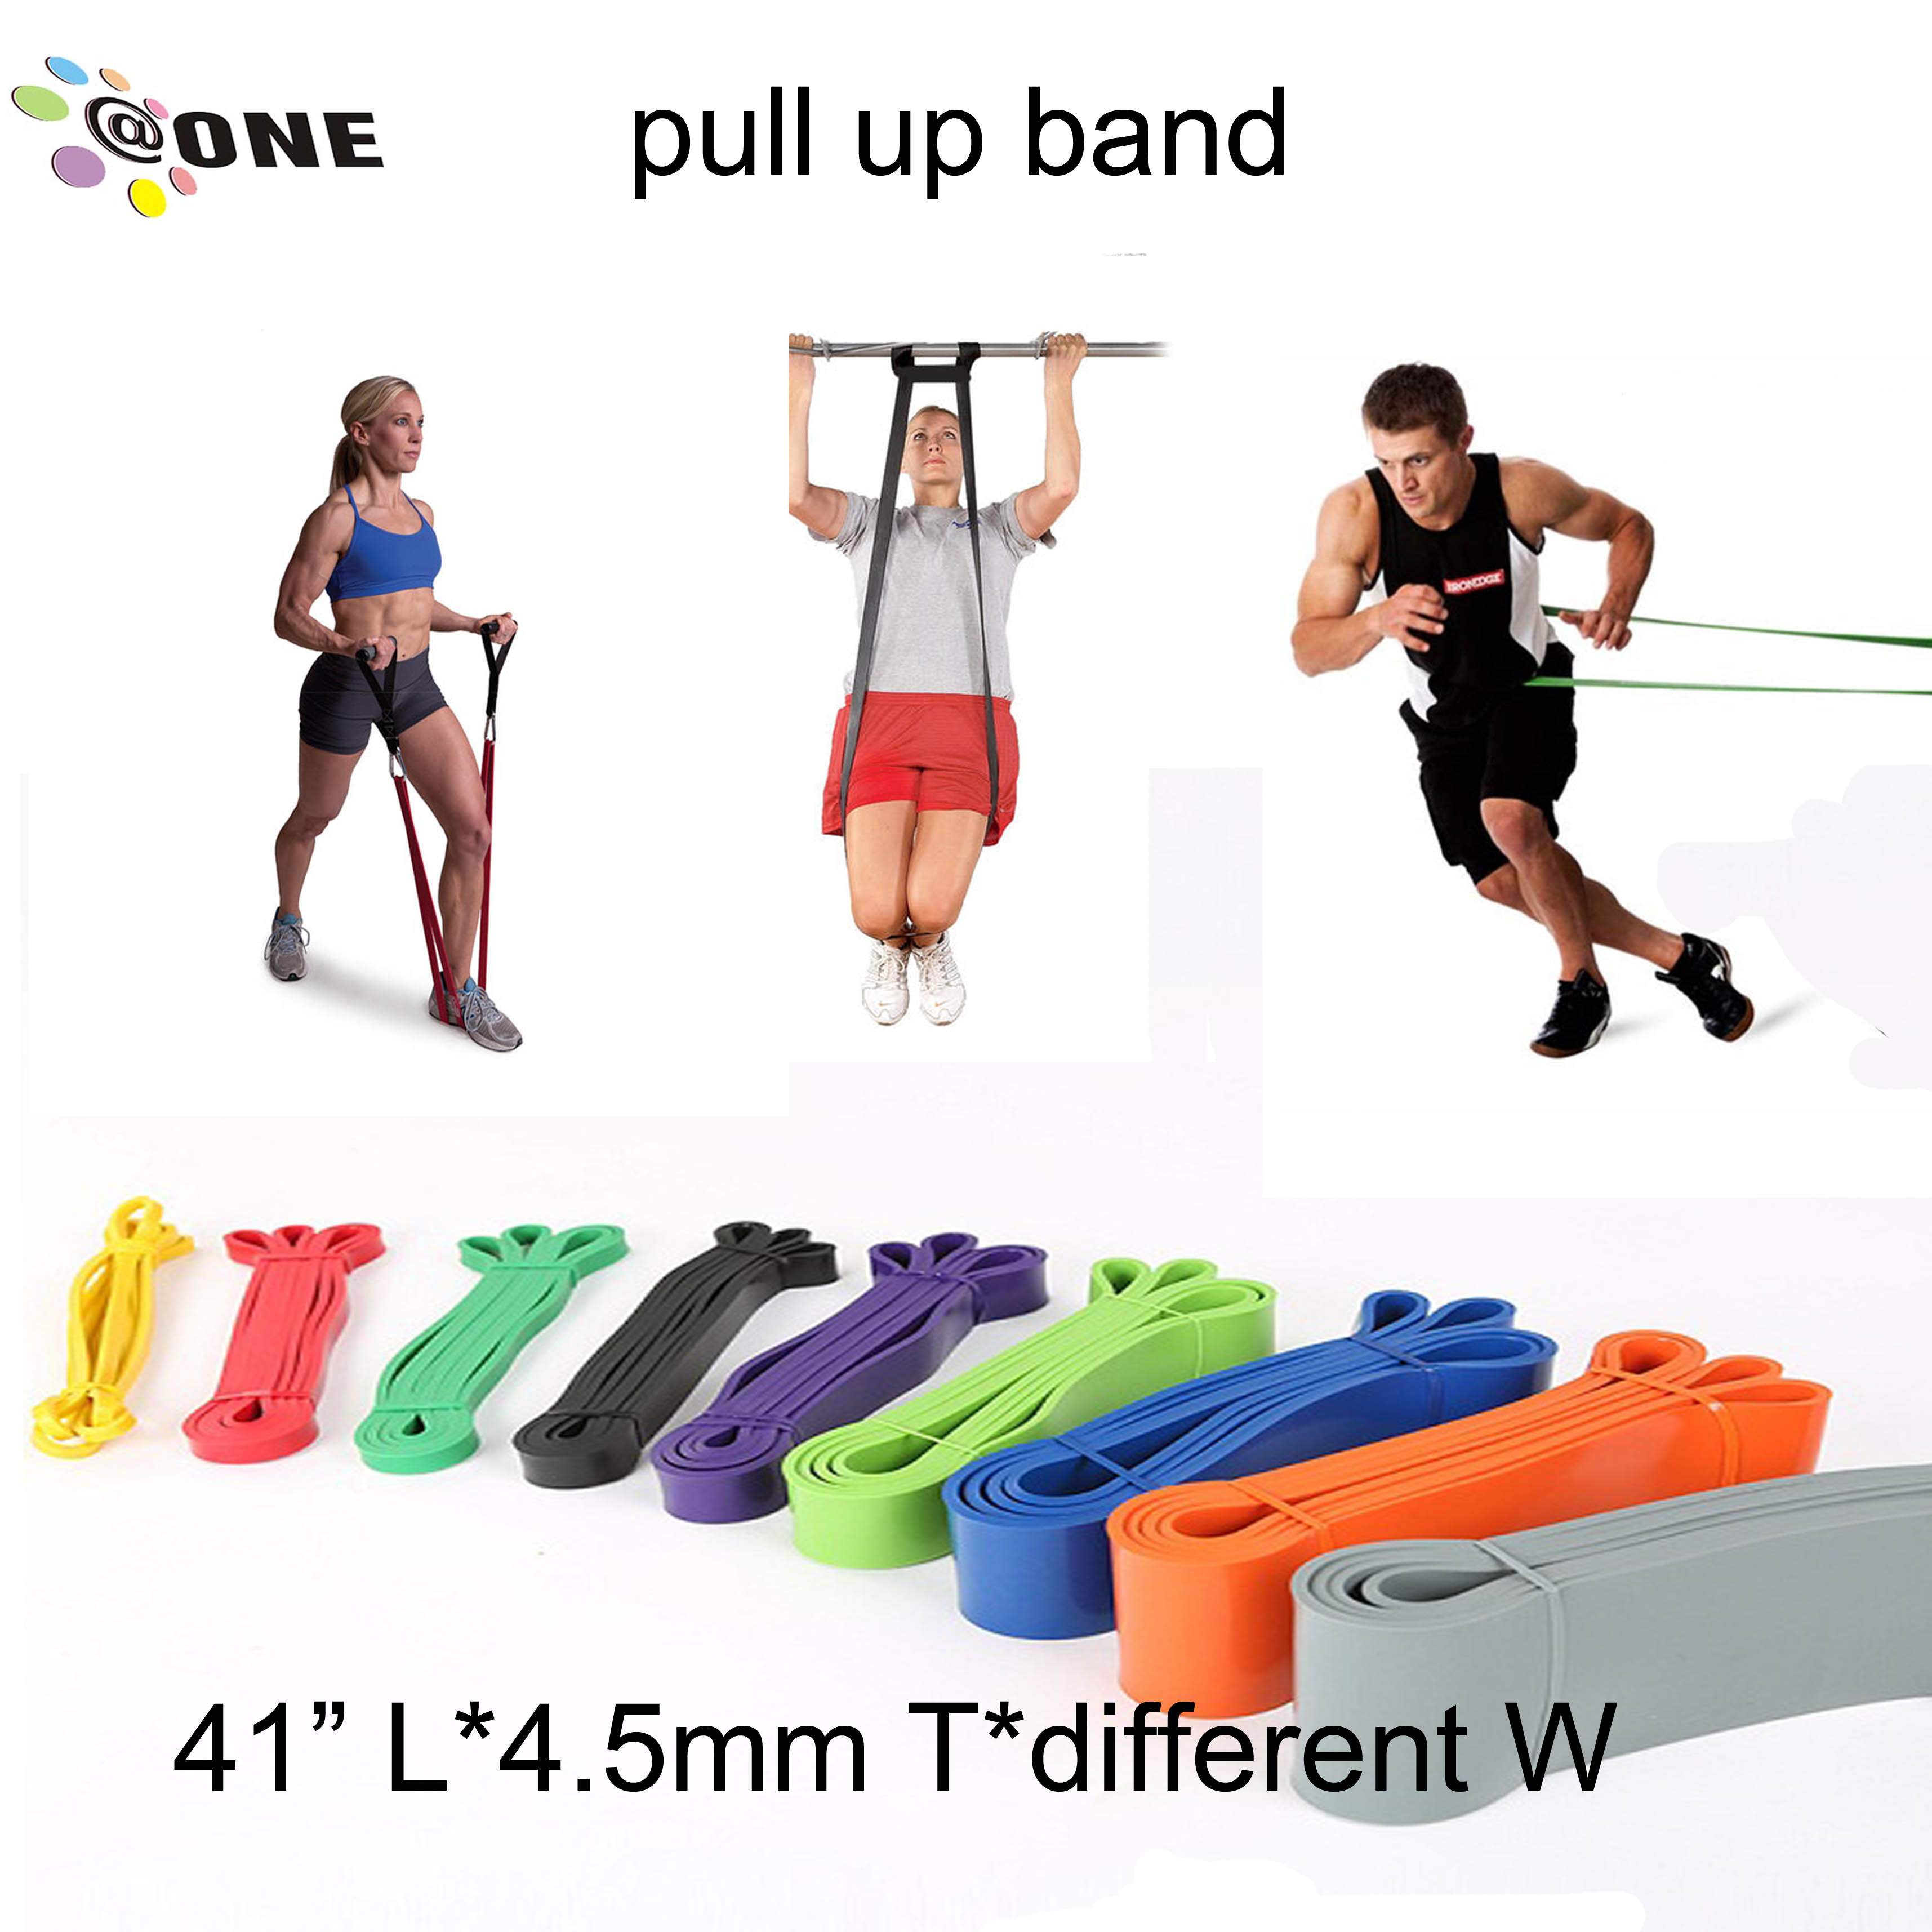 Colorful Aerobic Accessories Resistance Loop Band A-PB32 Fitness Equipment Used Home GYM Equipment Sale Useful Equipment